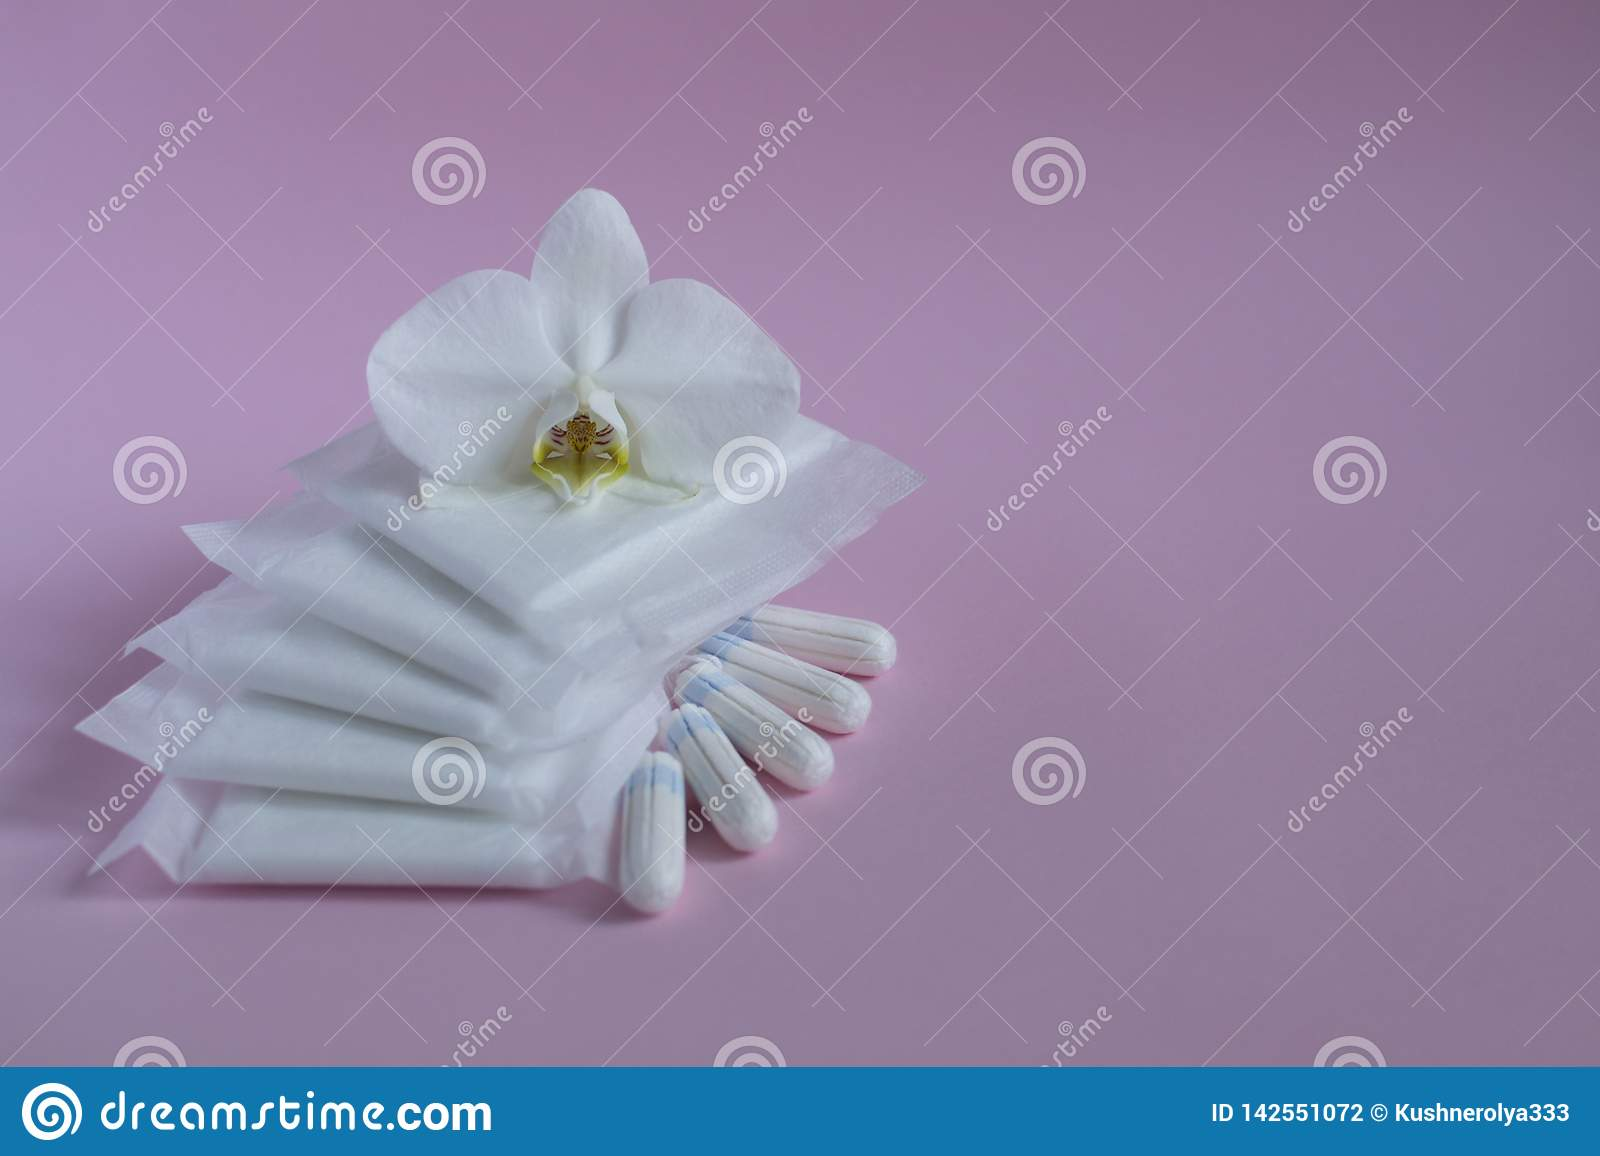 Women`s hygiene products